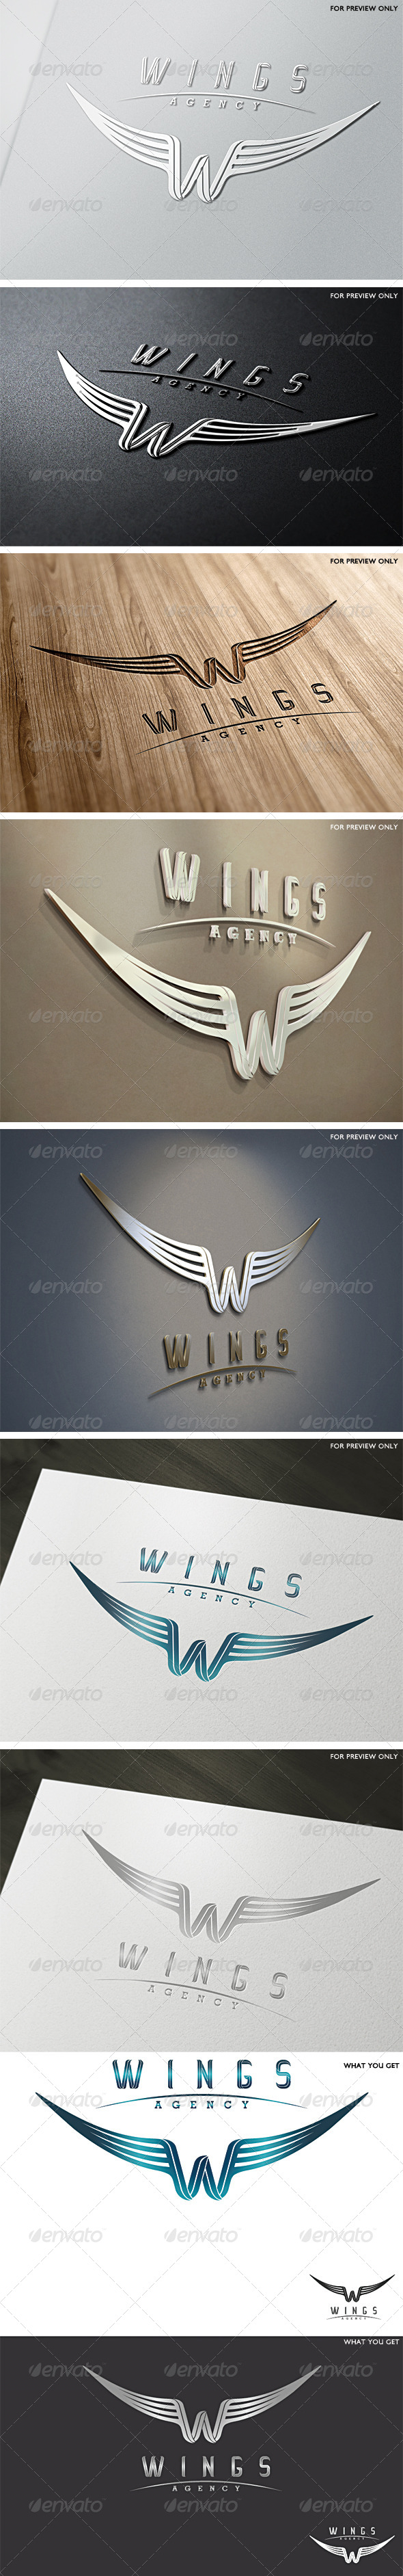 GraphicRiver Wings Agency Letter W Logo Template 4882250